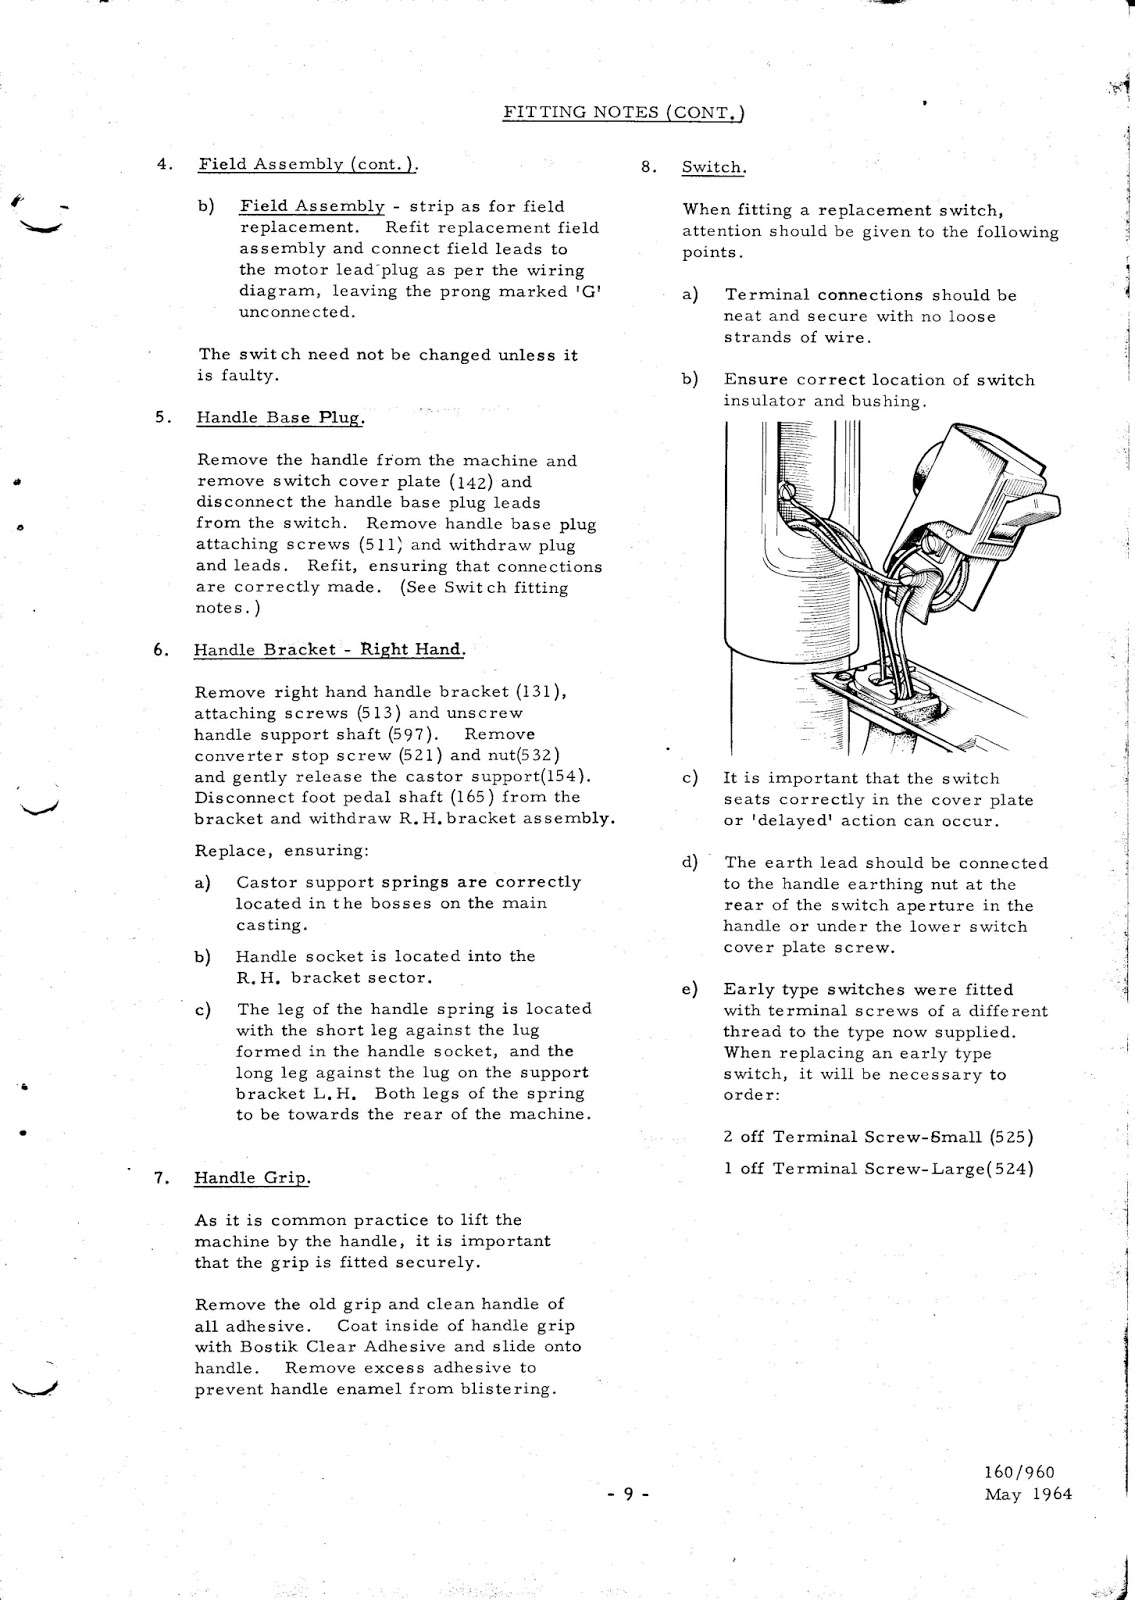 0009 hoover 160 & 190 service manual parts list henry hoover wiring diagram at n-0.co